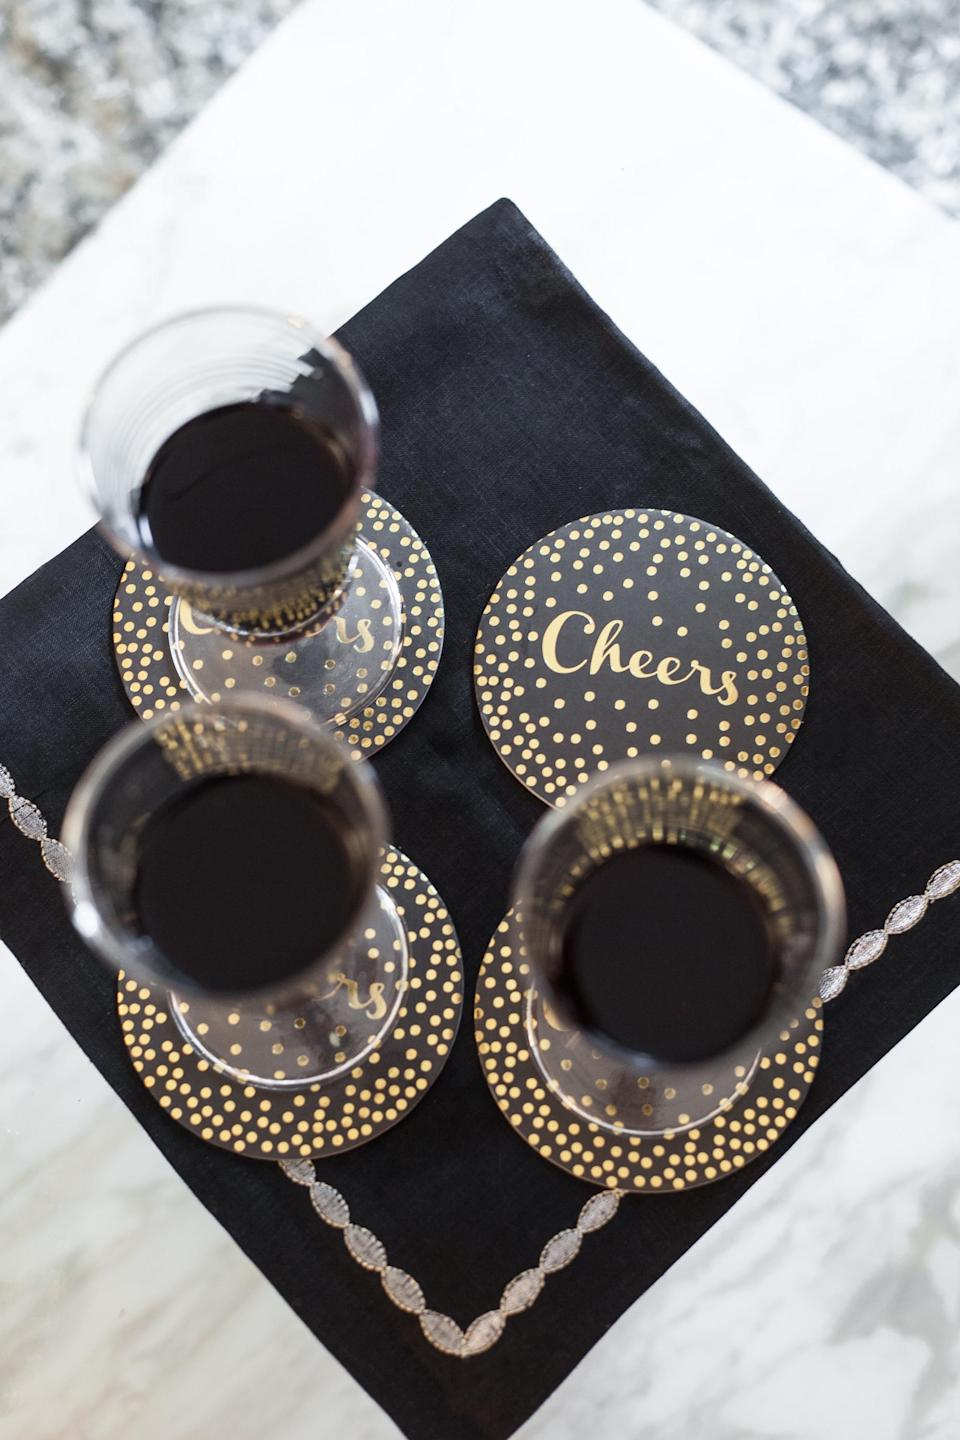 """<p>Aiming to evoke a classic Kate Spade vibe at your party? A clean black palette speckled with shimmery gold dots and bouncy calligraphy is your recipe for success, as proven by this vignette from <a rel=""""nofollow noopener"""" href=""""http://fashionablehostess.com/"""" target=""""_blank"""" data-ylk=""""slk:Fashionable Hostess"""" class=""""link rapid-noclick-resp"""">Fashionable Hostess</a>. </p>"""